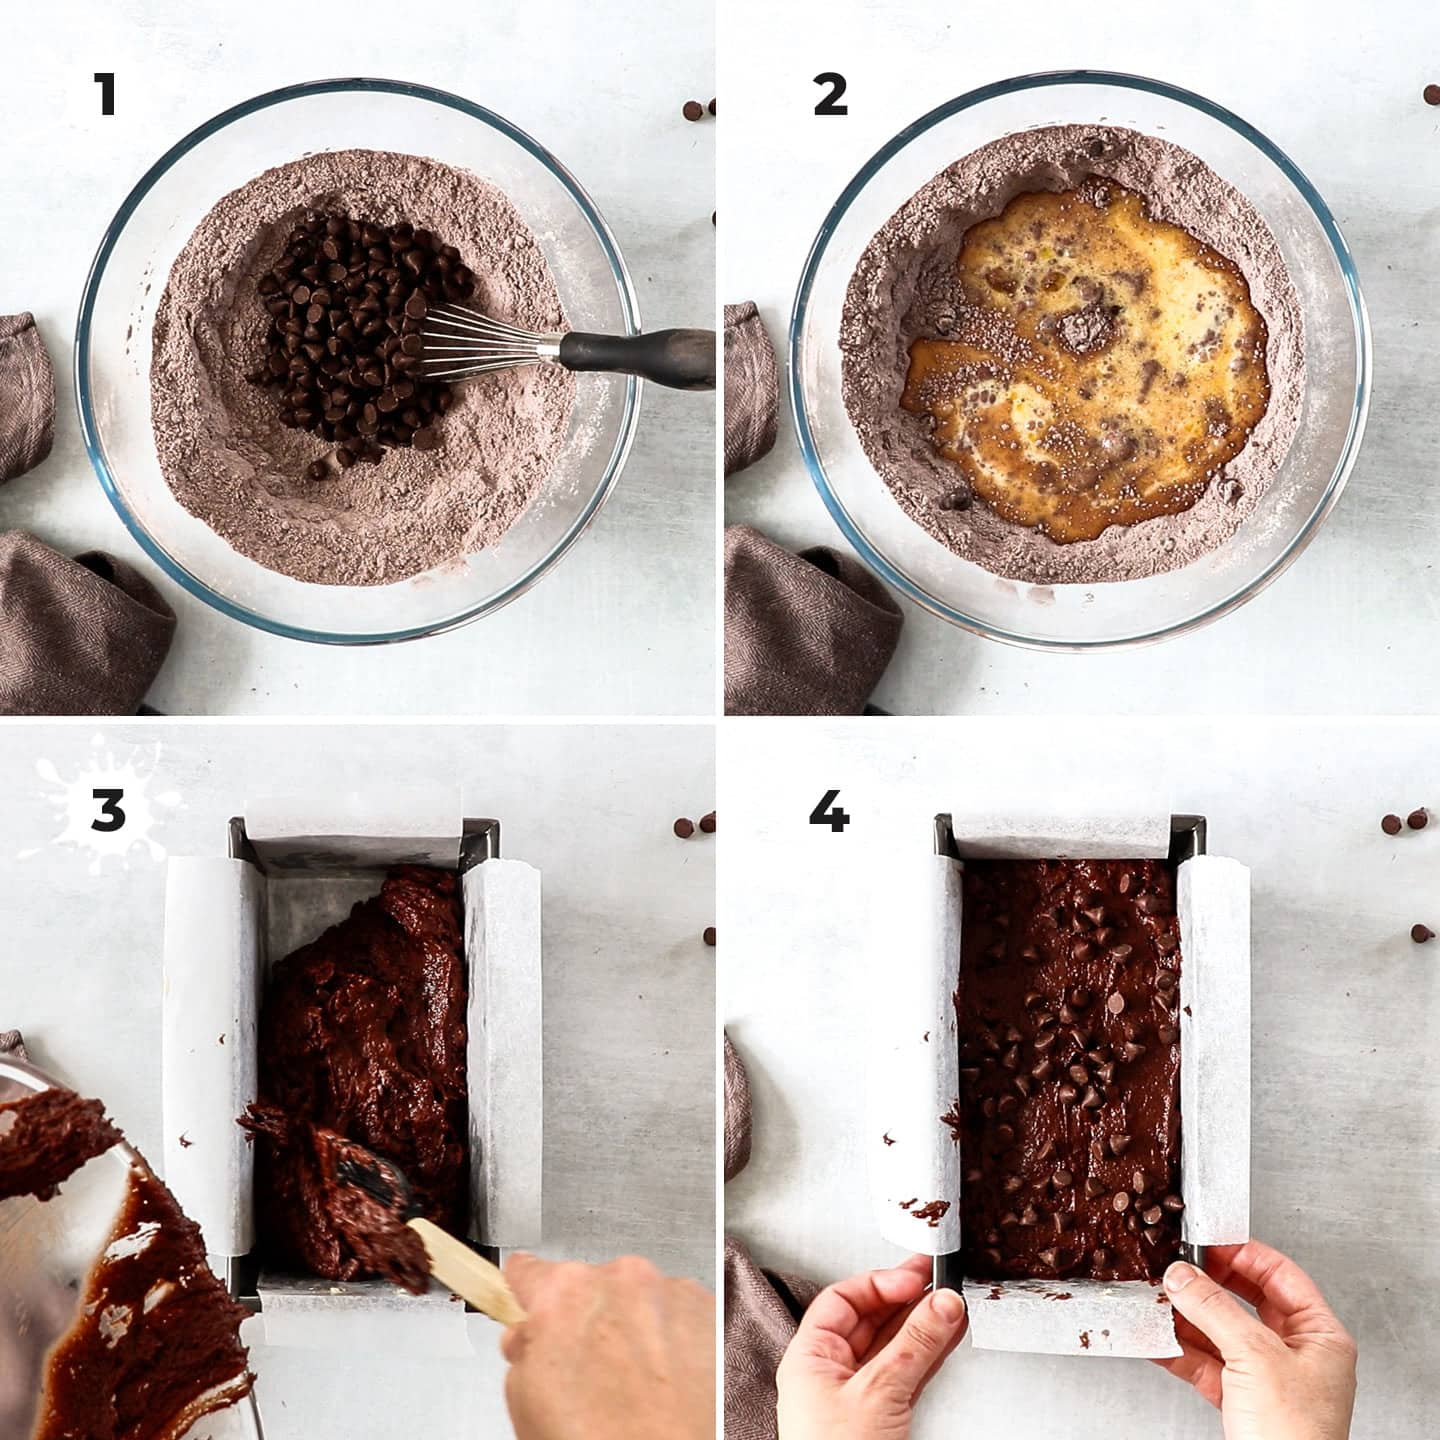 Collage of 4 images showing making chocolate bread batter